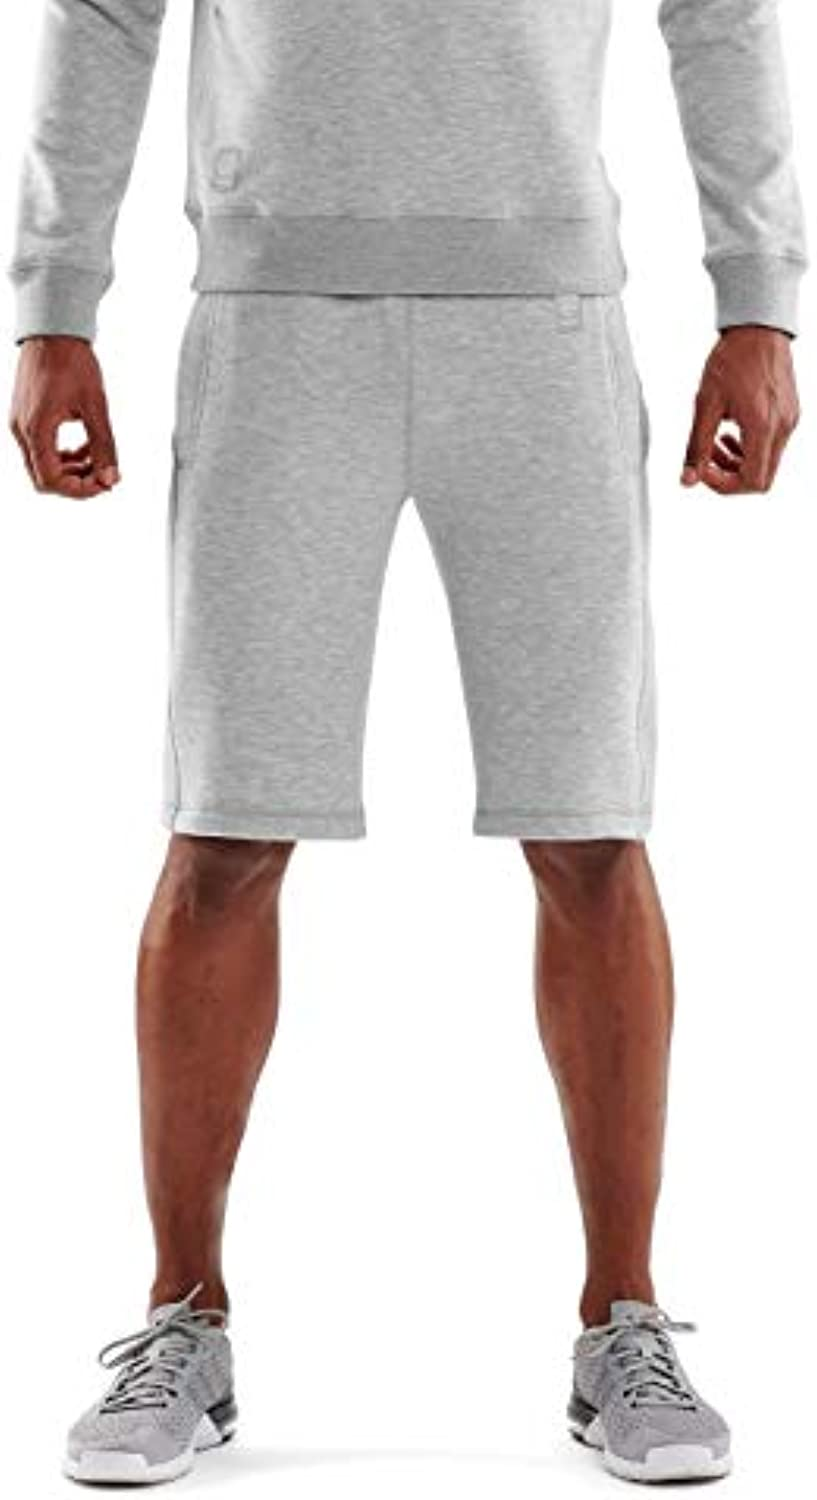 3eca05d225dba Skins Linear Tech Fleece Shorts Shorts Shorts 989ab6 - ekbvdq ...